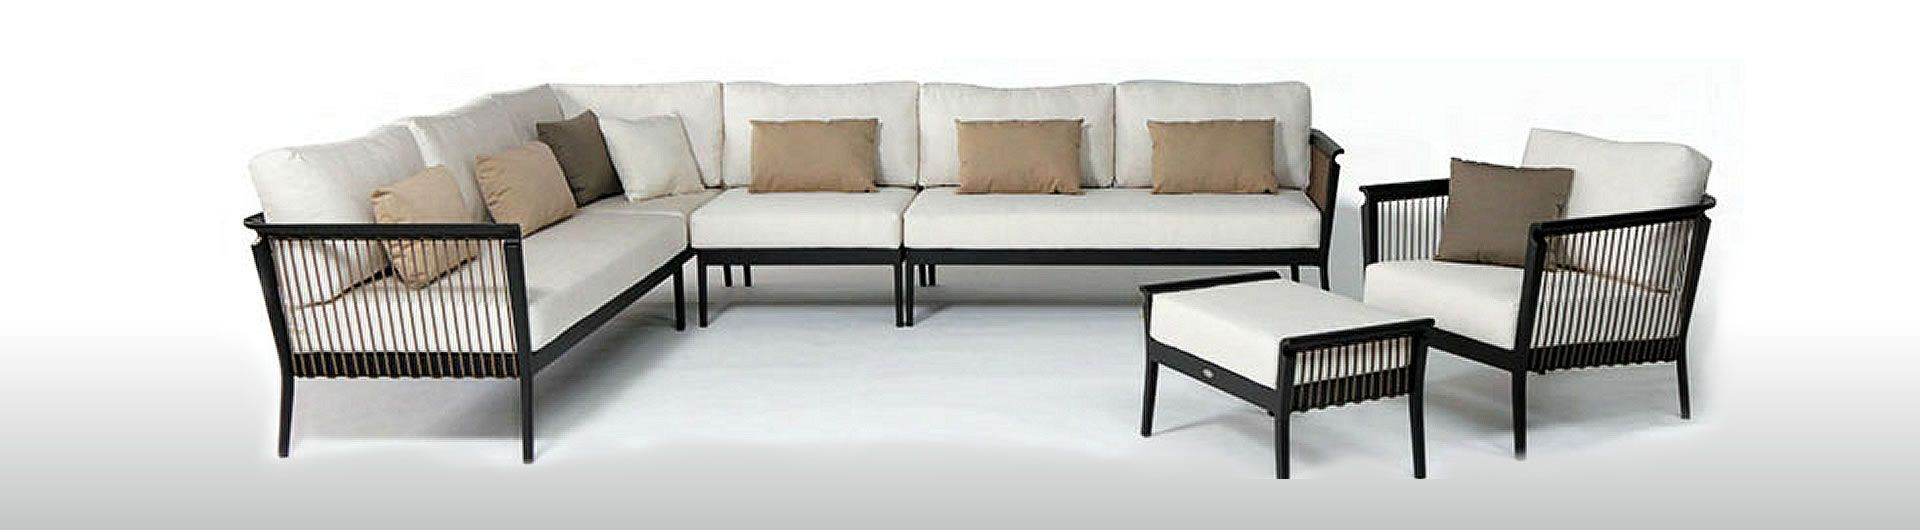 Copacabana Sectional Collection